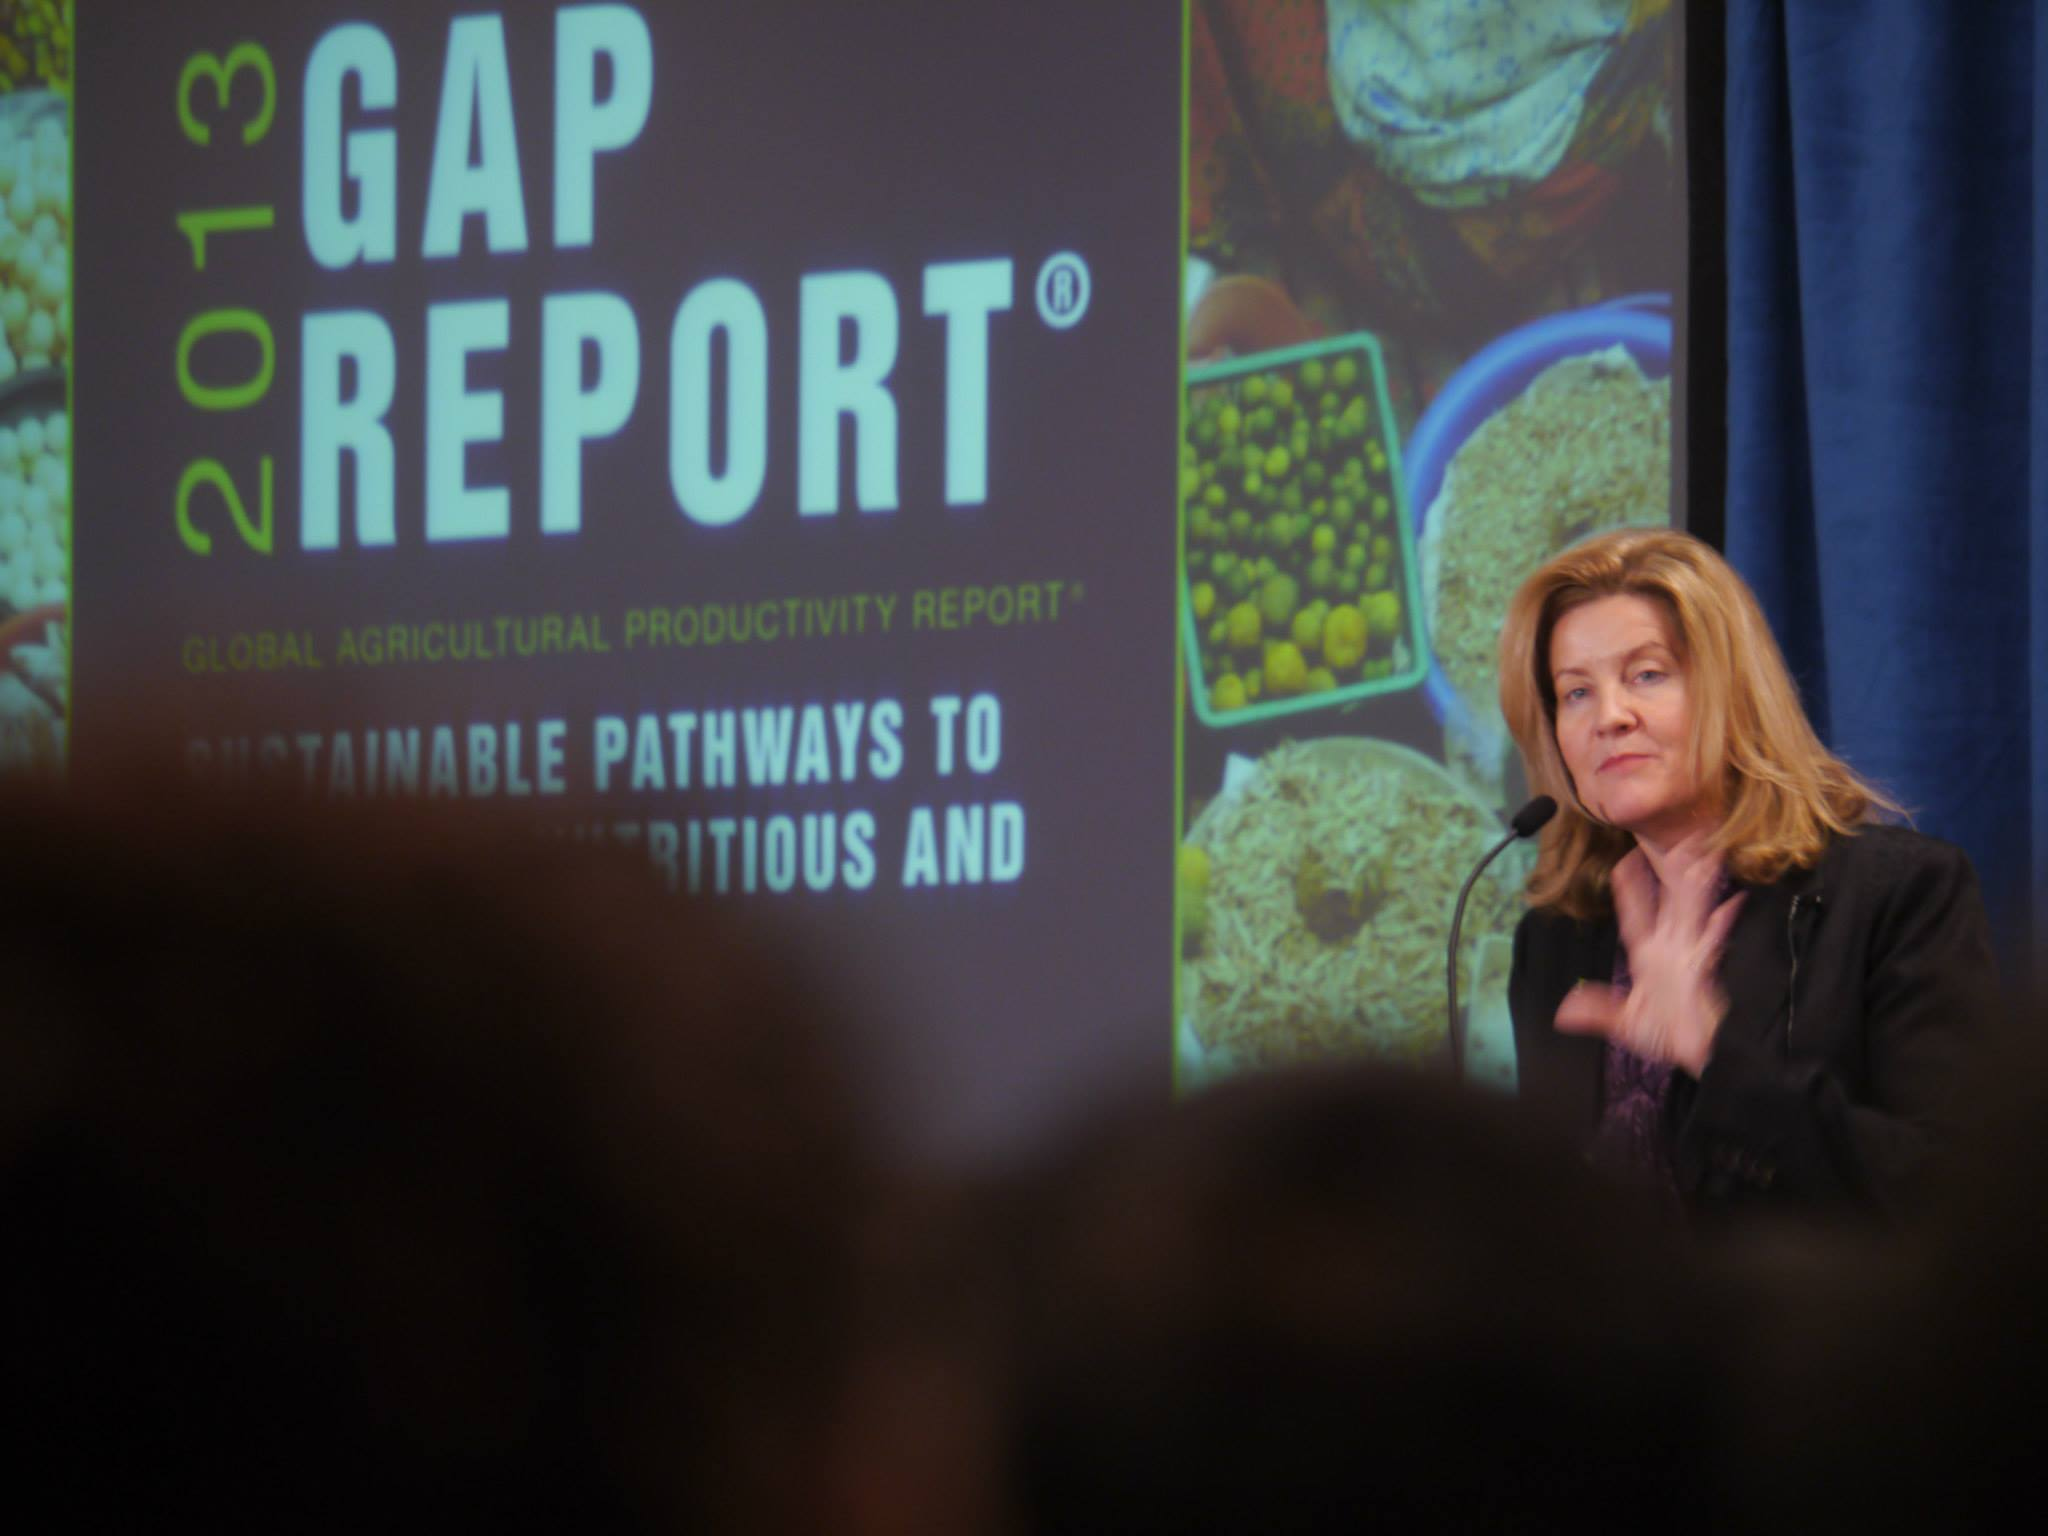 Event at the World Food Prize in Iowa